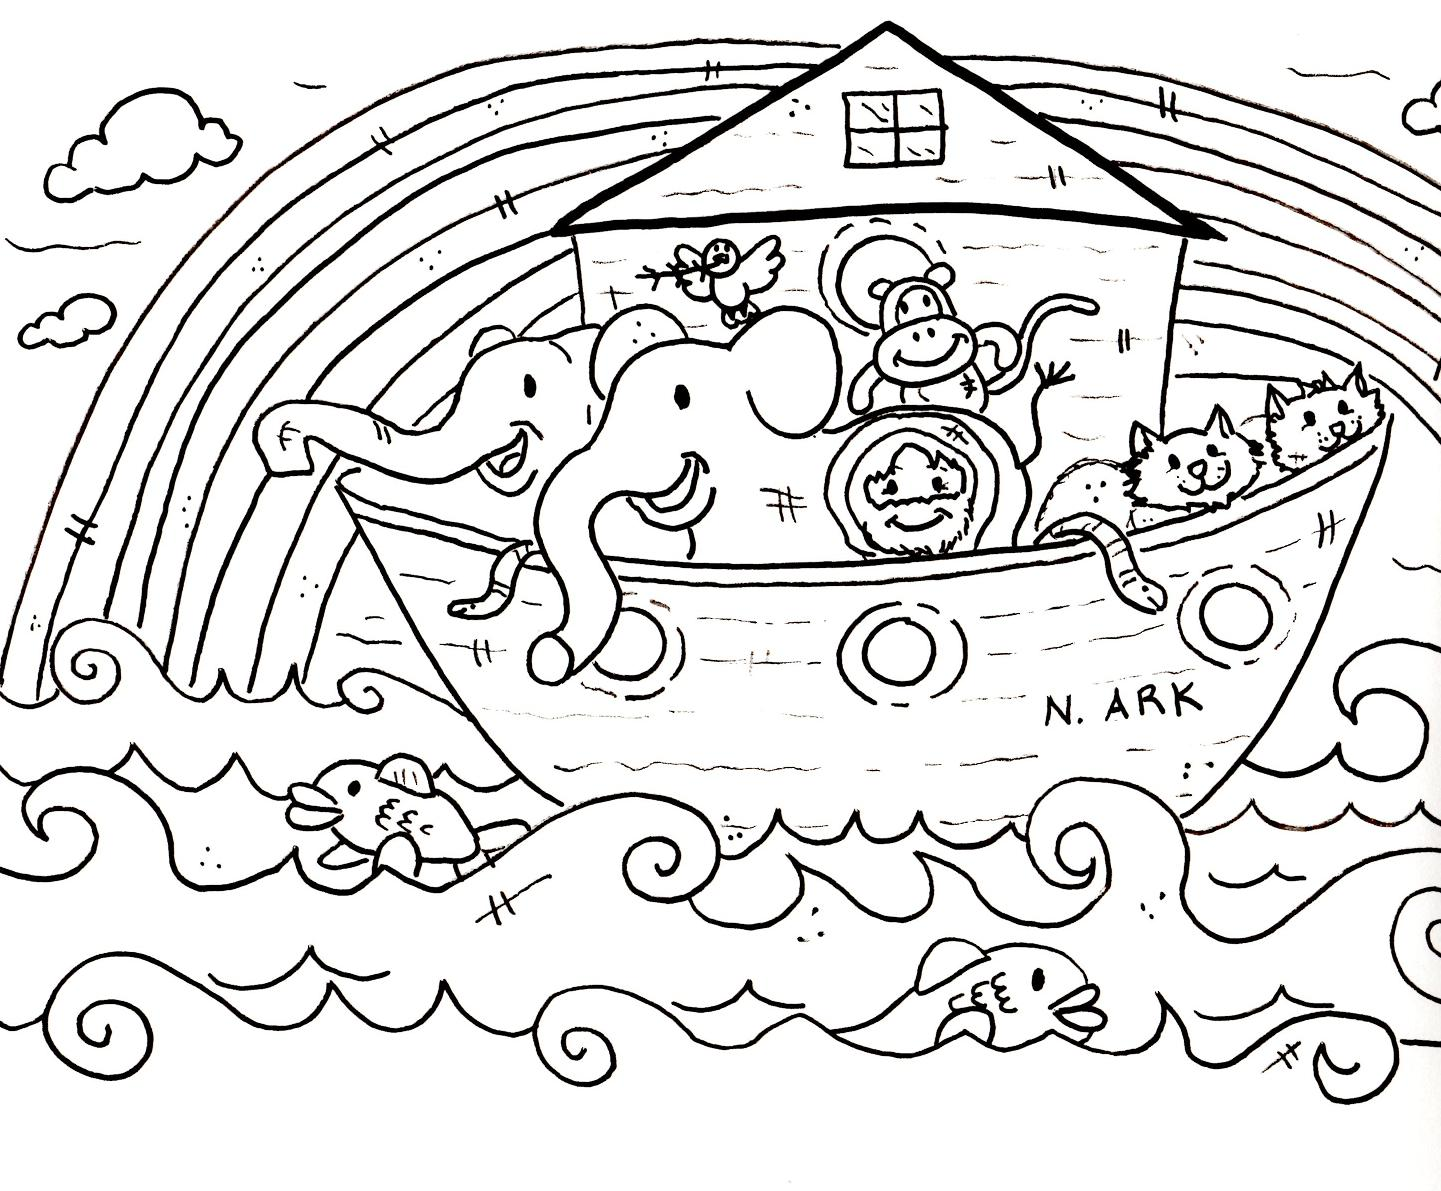 sunday school coloring pages printable - photo#14